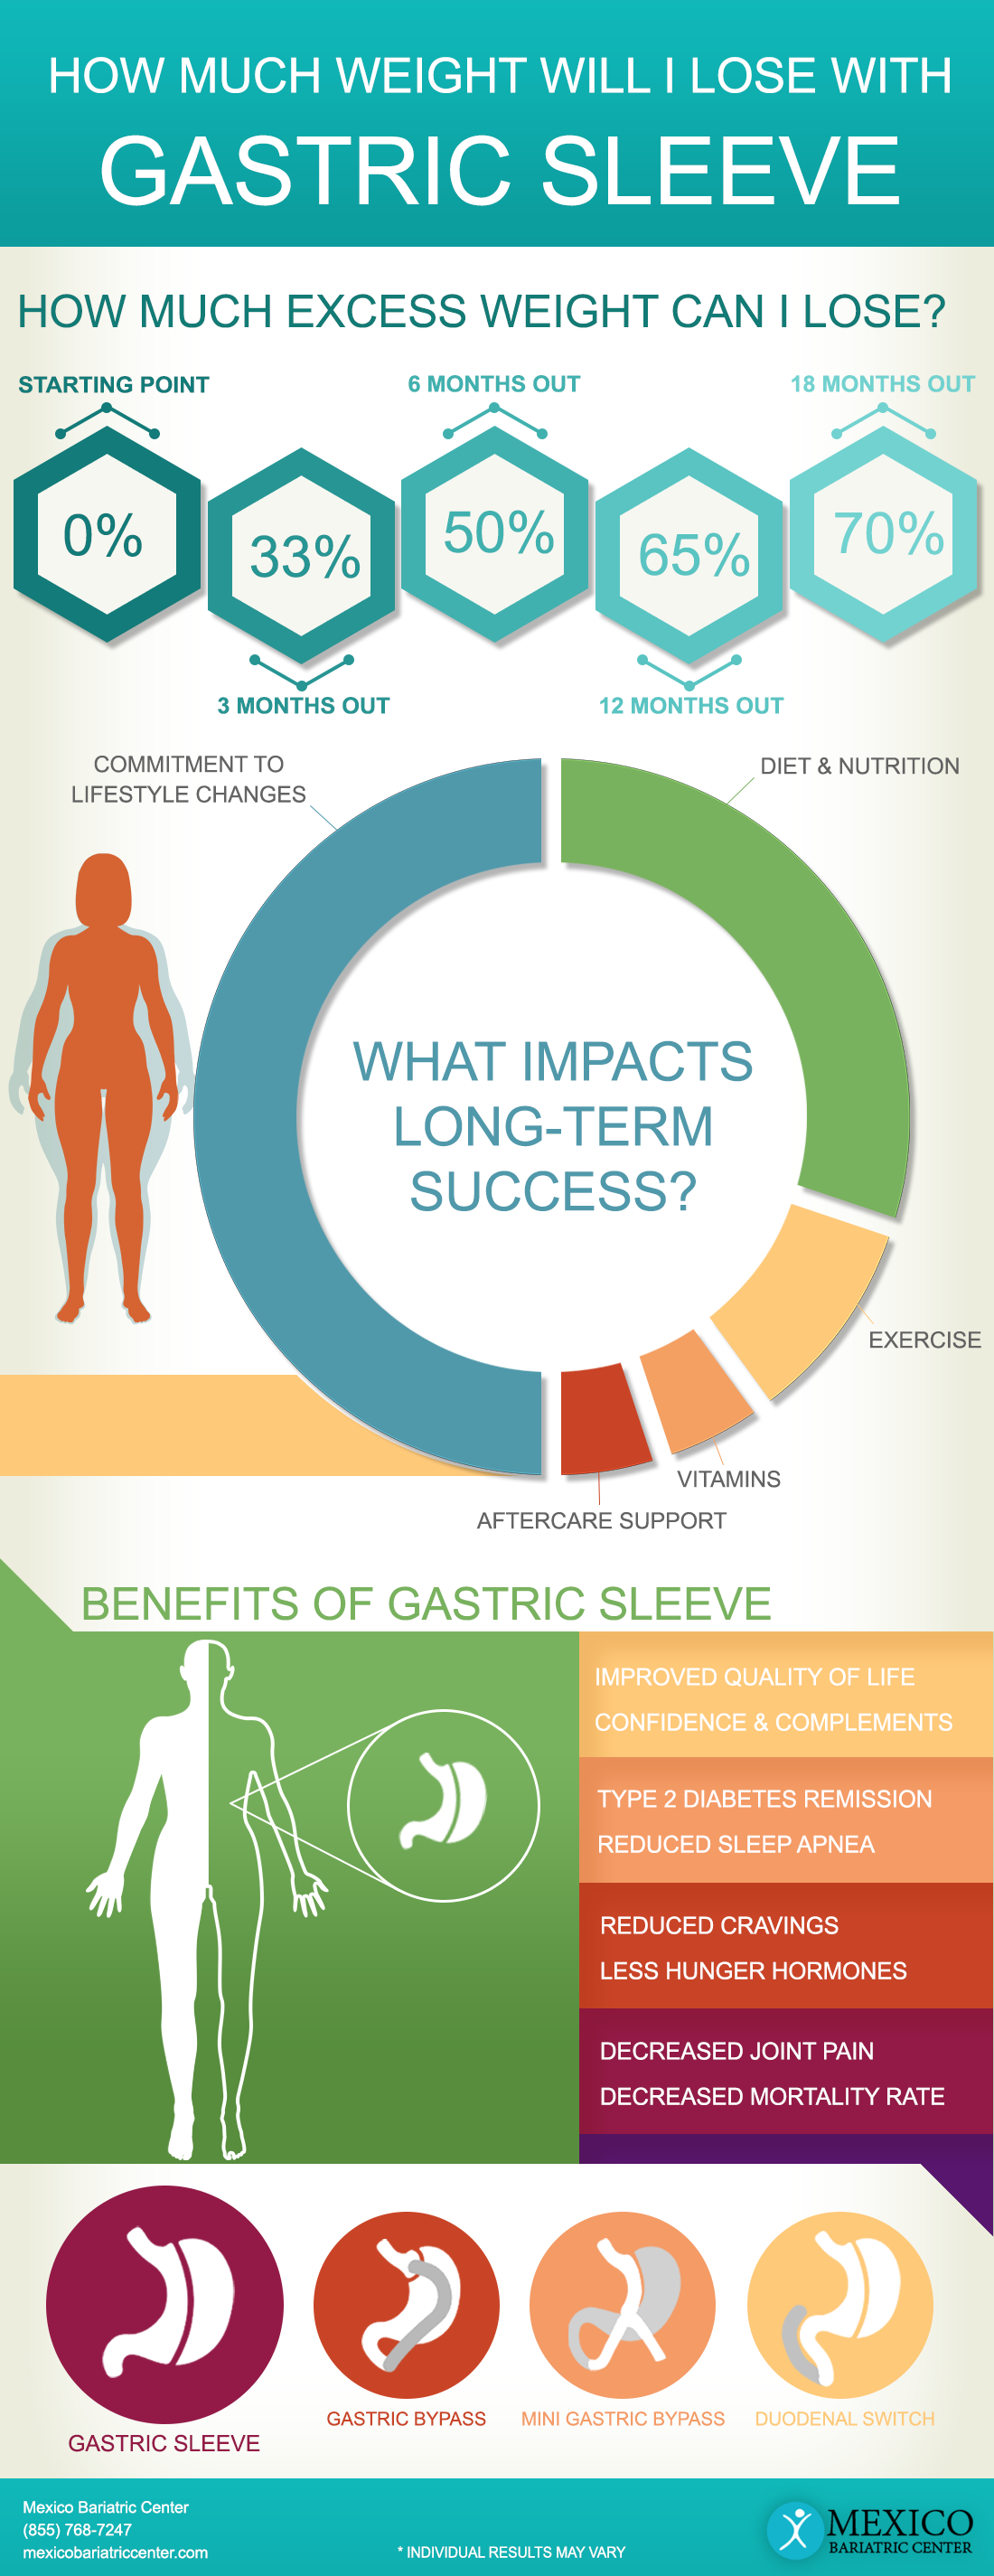 Gastric Sleeve Expected Weight Loss Timeline - Full Procedure Summary and Benefits Infographic